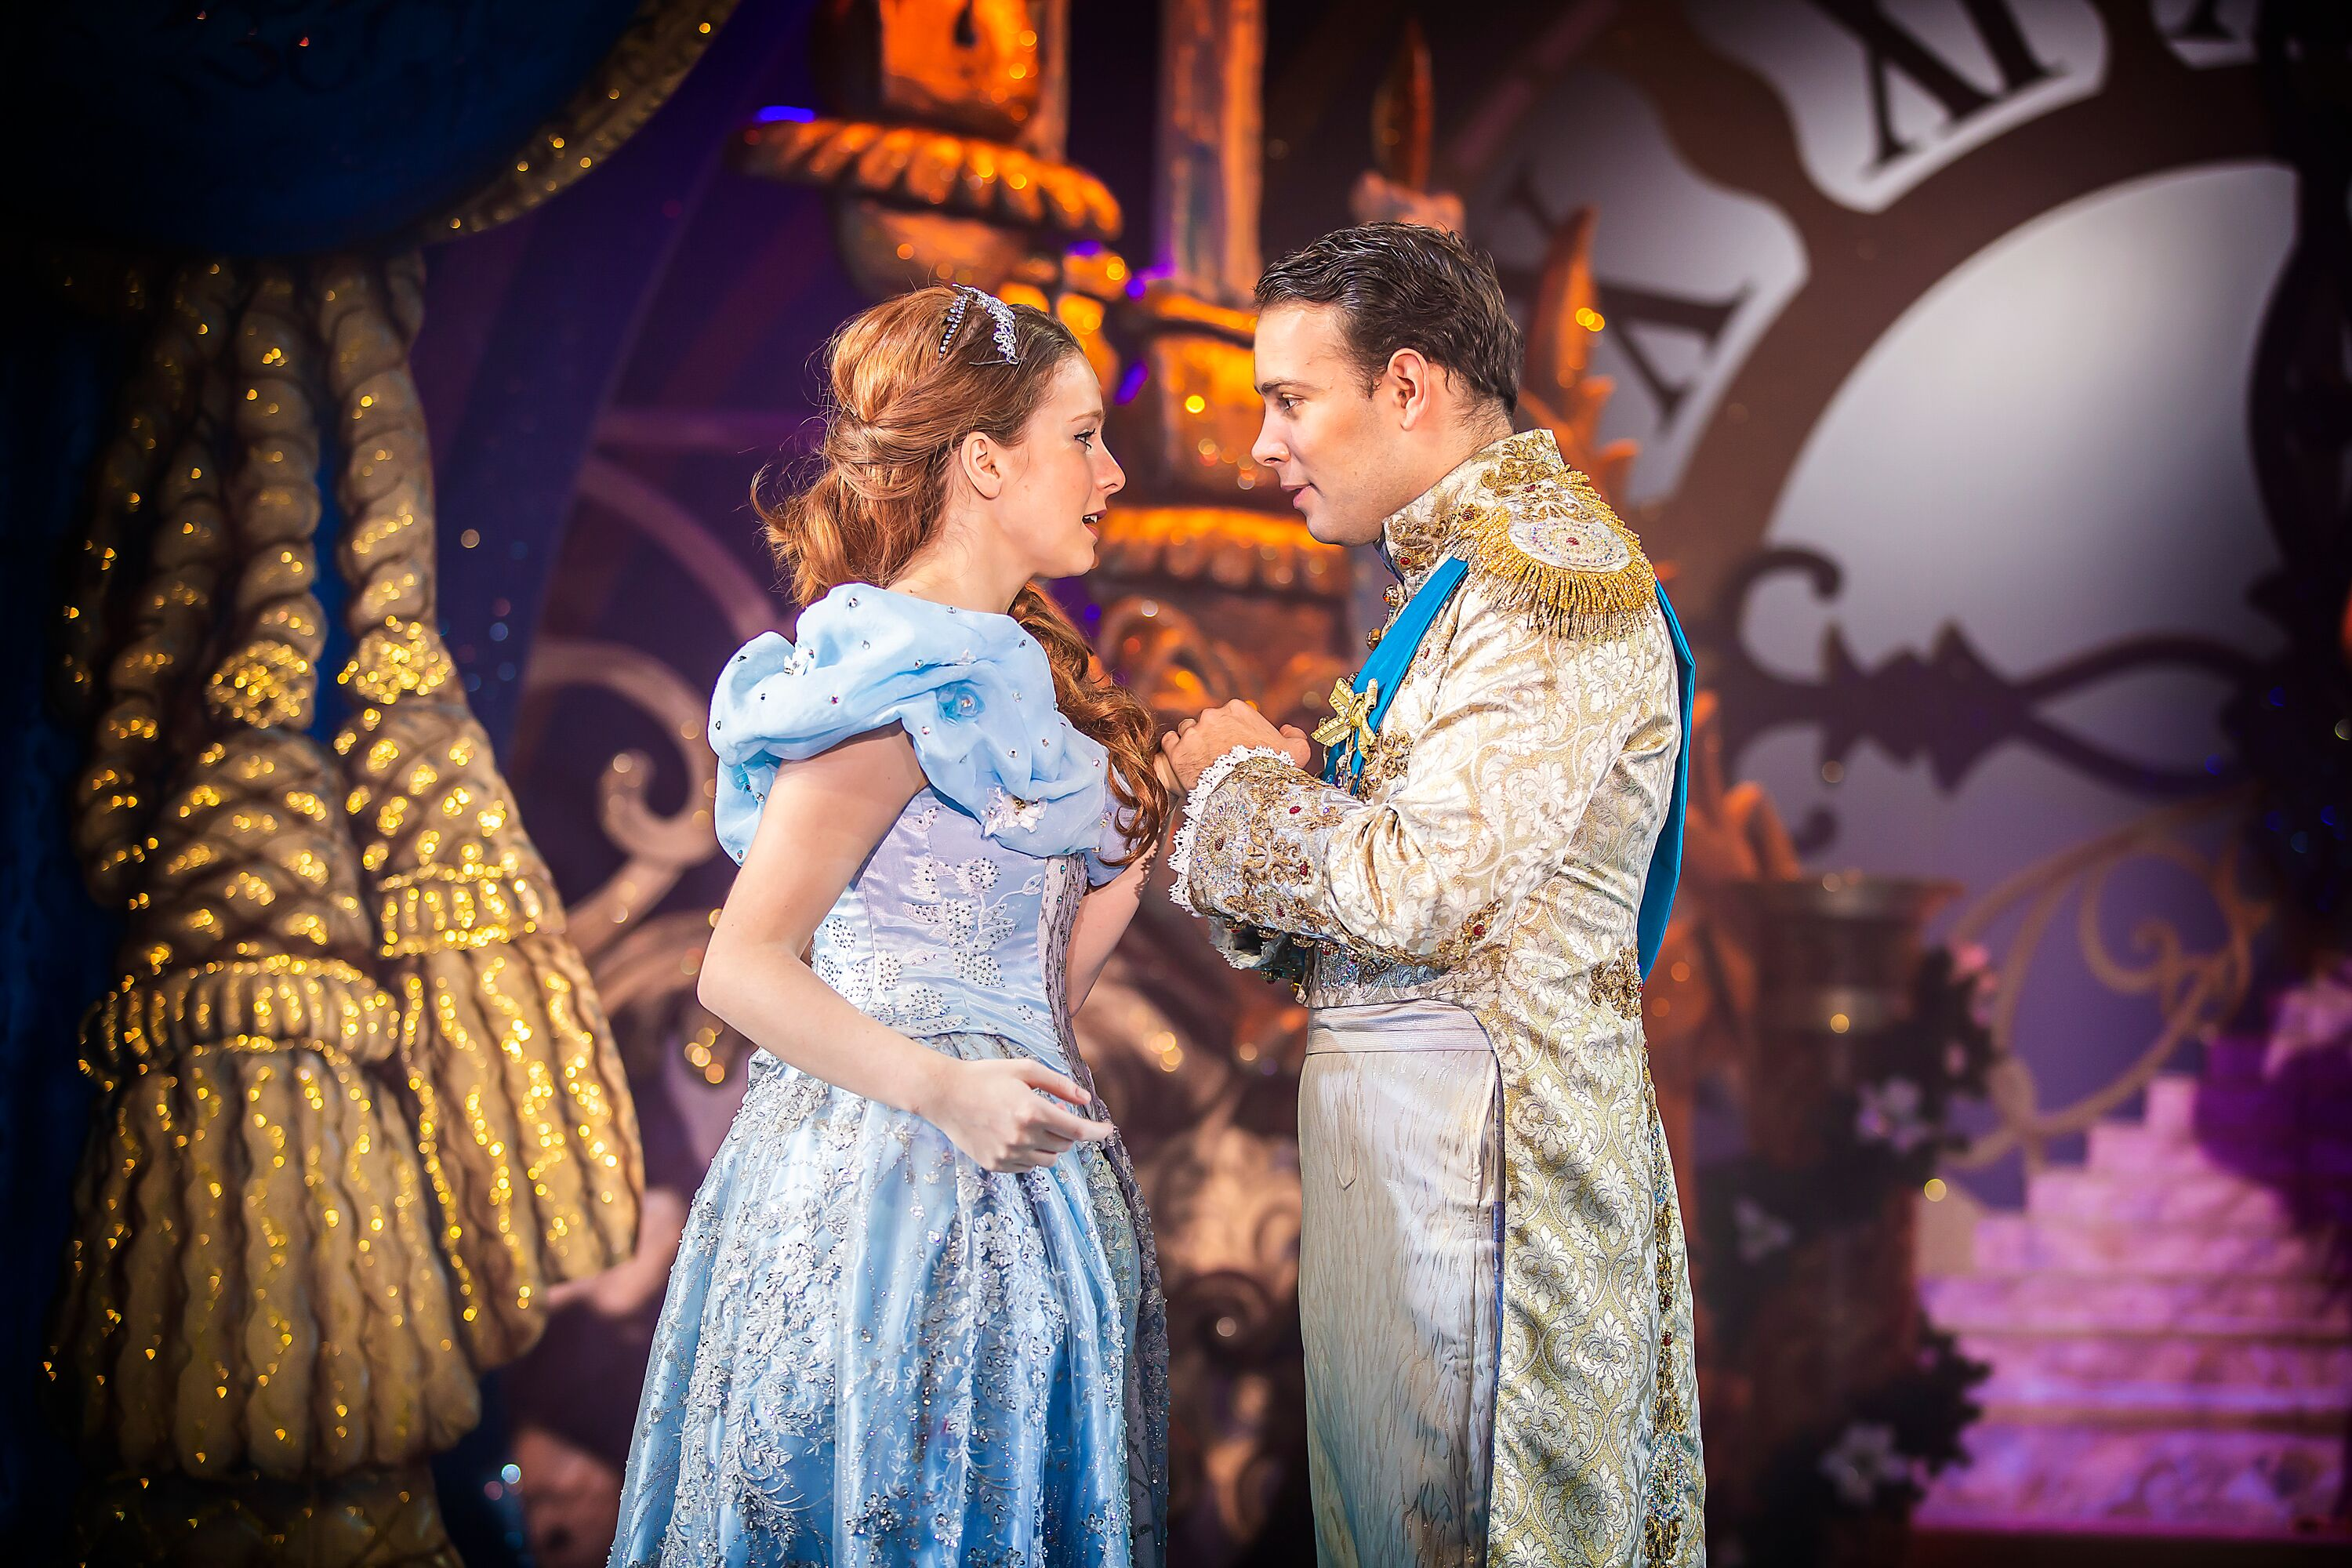 Image shows Cinderella in her sky blue glittery ball gown, and the prince in his ball golden suit gazing into eachothers eyes! Photography By Pamela Raith